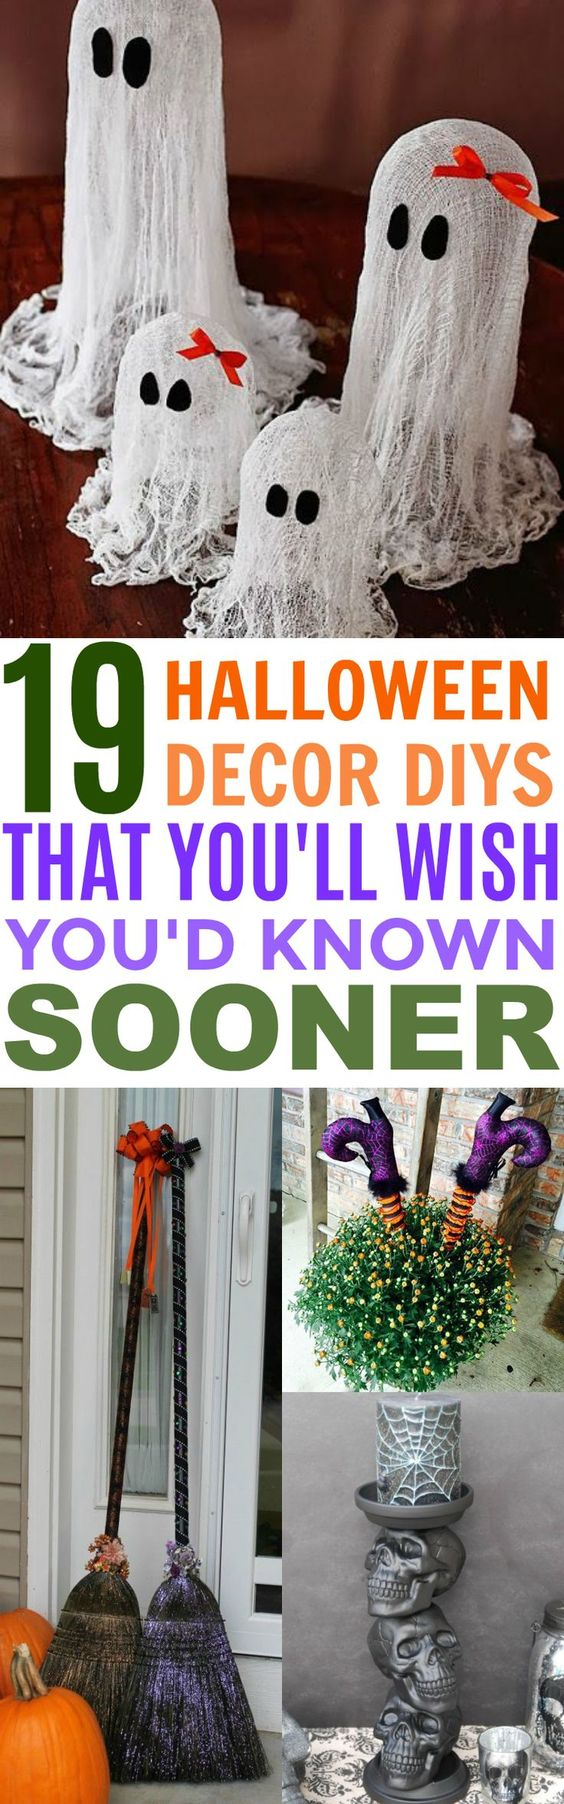 19 Spooktacular Halloween Decor DIYs You'll Wish You'd Known Sooner | Porch Ideas | Garage Decorations | Candle Holders | Goodie Bags